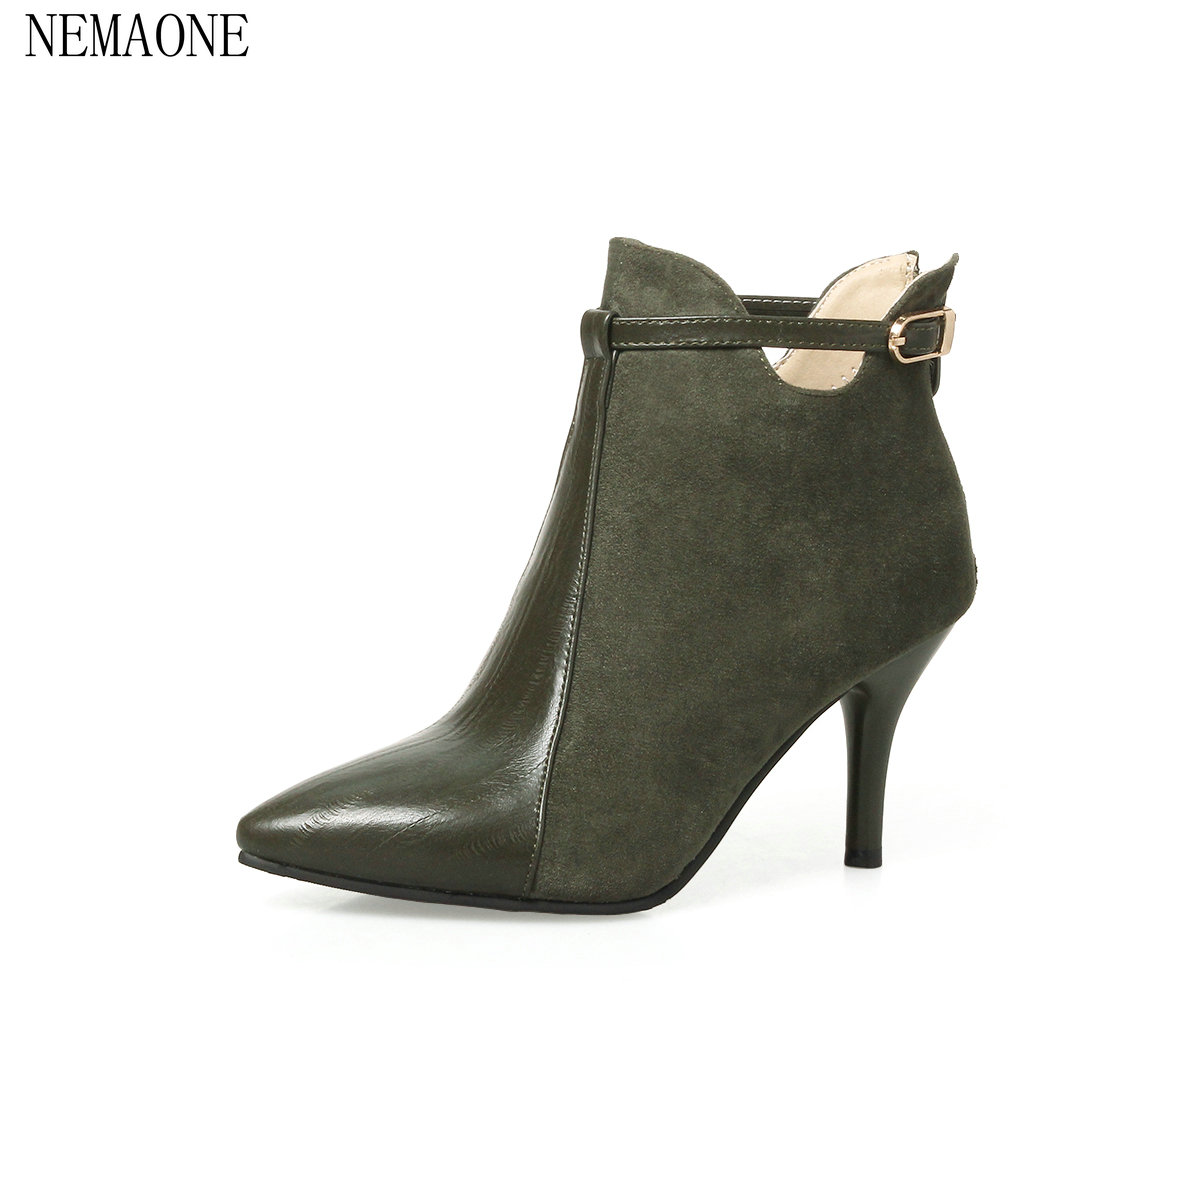 NEMAONE 2018 Women autumn Ankle Boots Fashion Bow Tie Thin High Heel Pointed Toe Zipper Deisgn Women Ankle Boots Size 33-43 nemaone 2018 women ankle boots square high heel pointed toe zipper fashion all match spring and autumn ladies boots